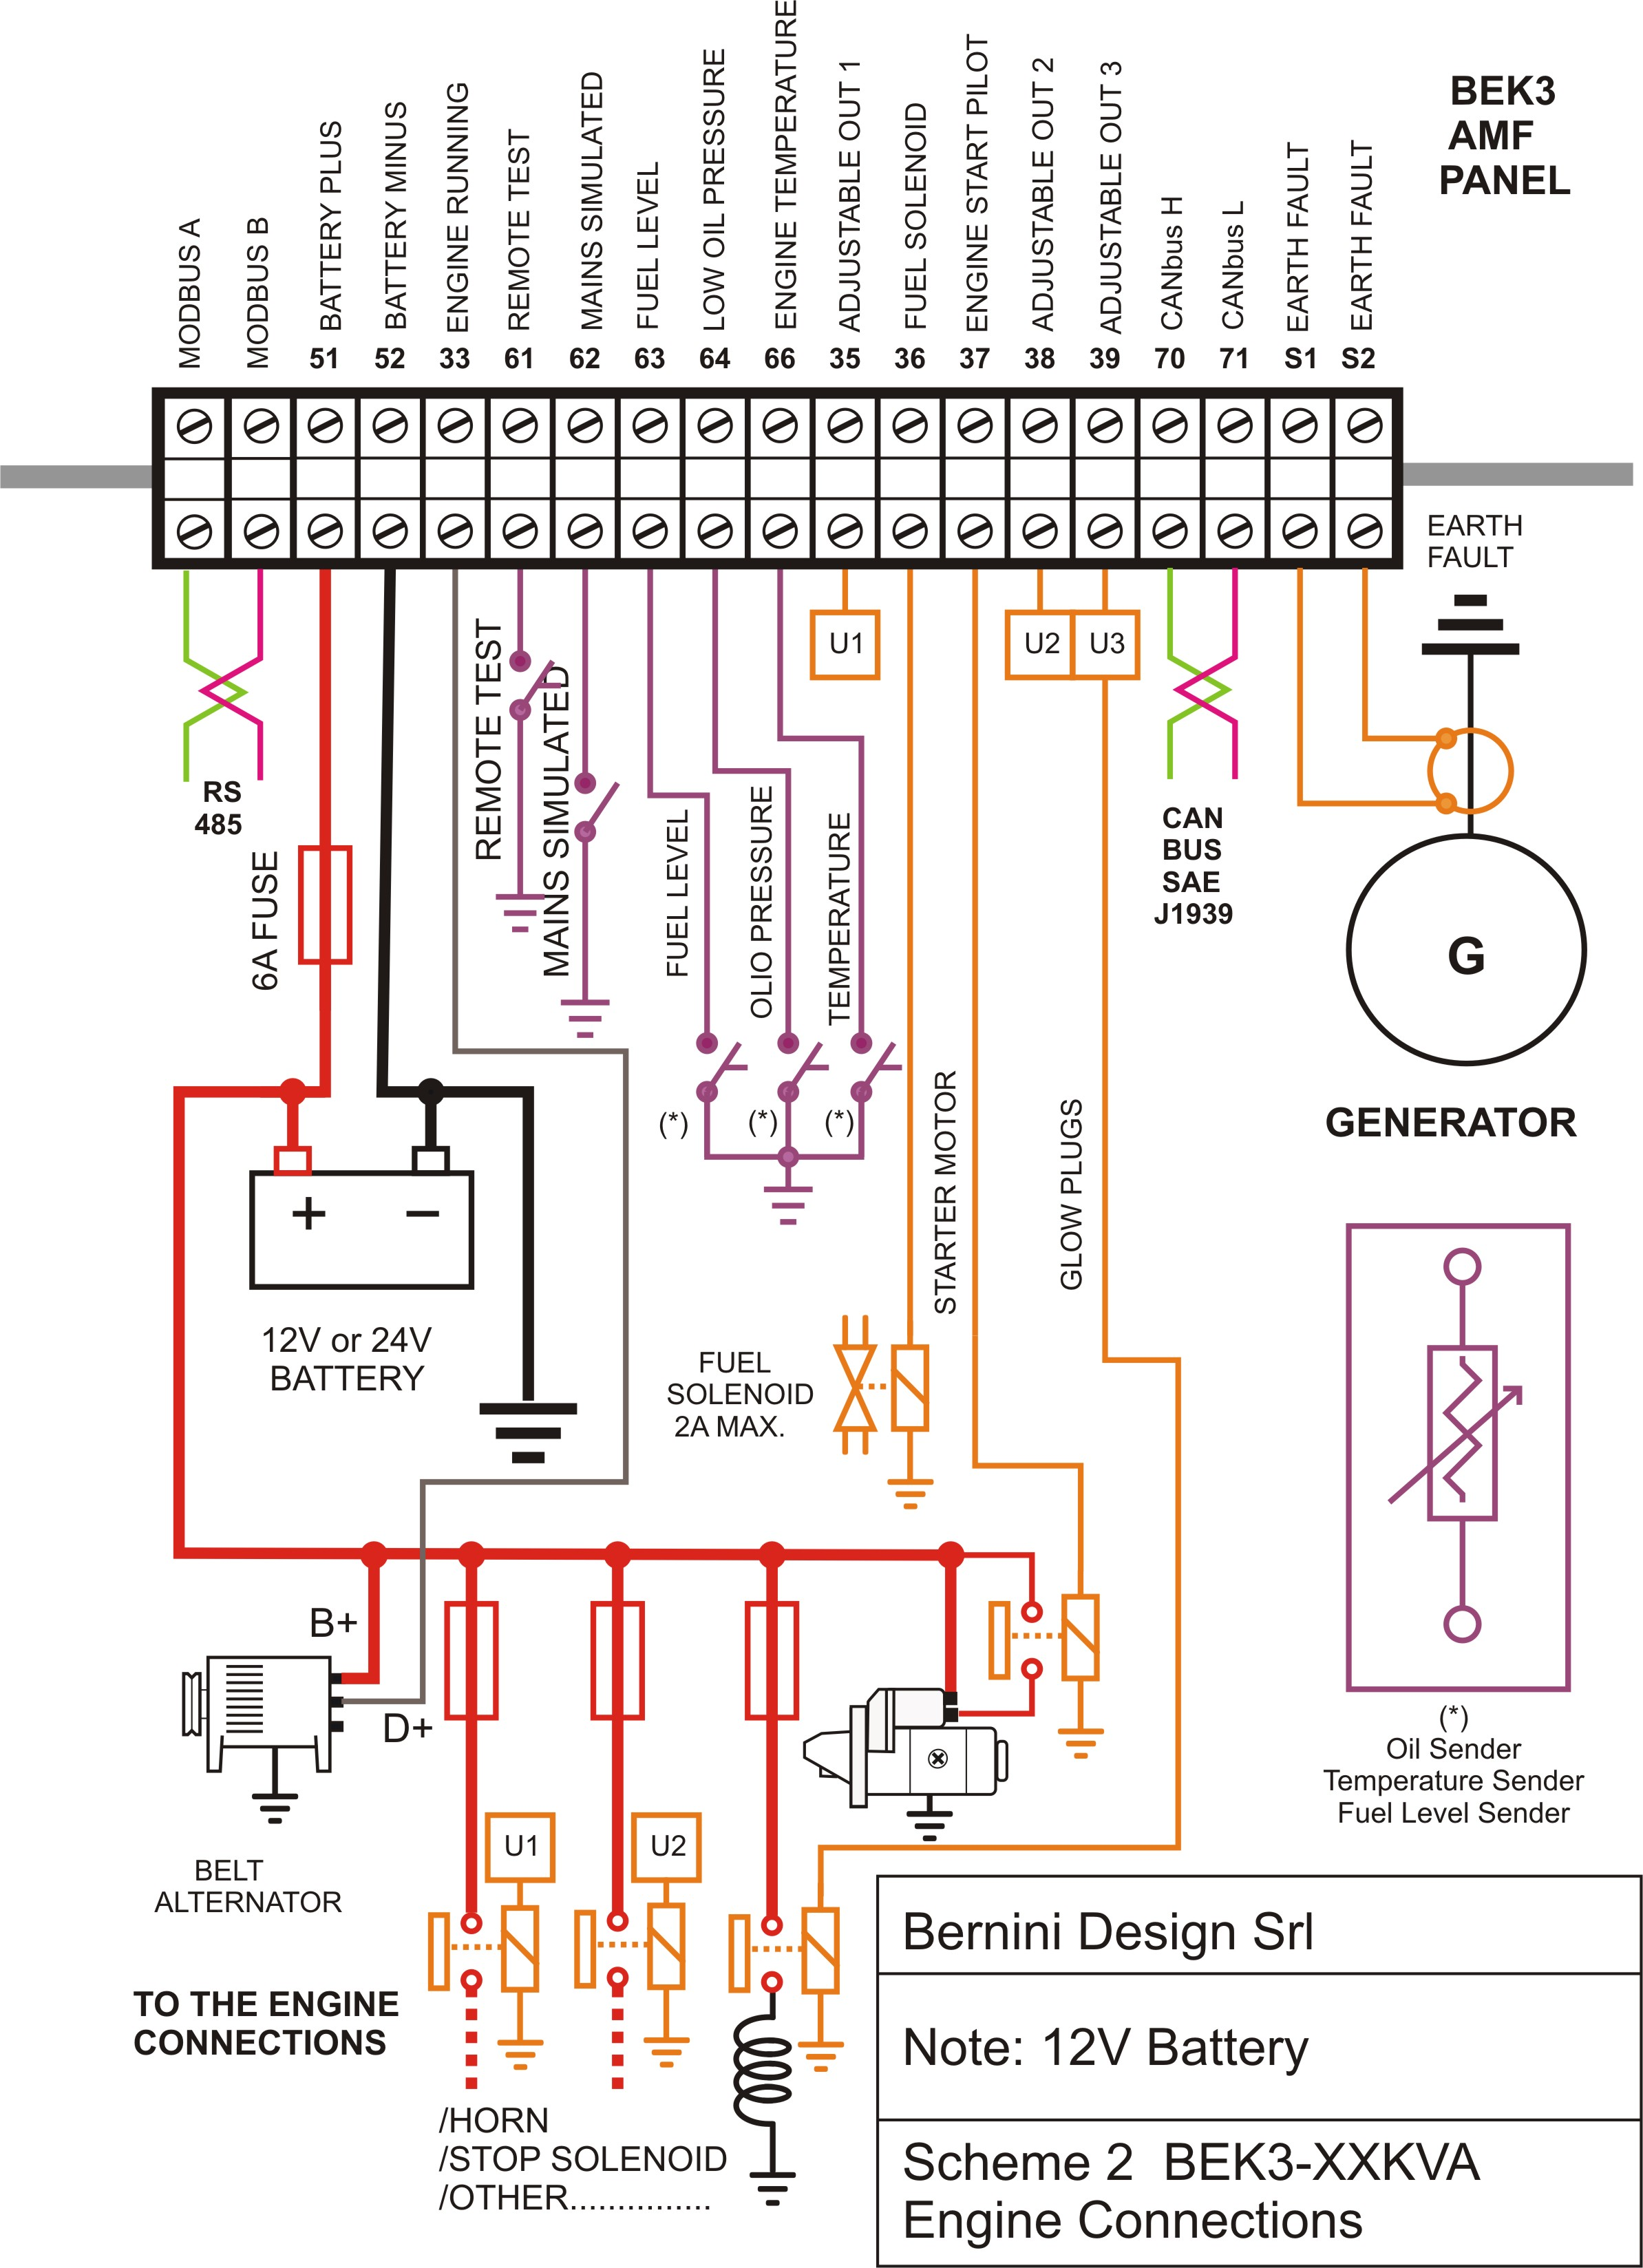 funky jcb wiring diagram illustration best images for wiring rh oursweetbakeshop info Electrical Control Panels Hot Tub Control Panel Diagram